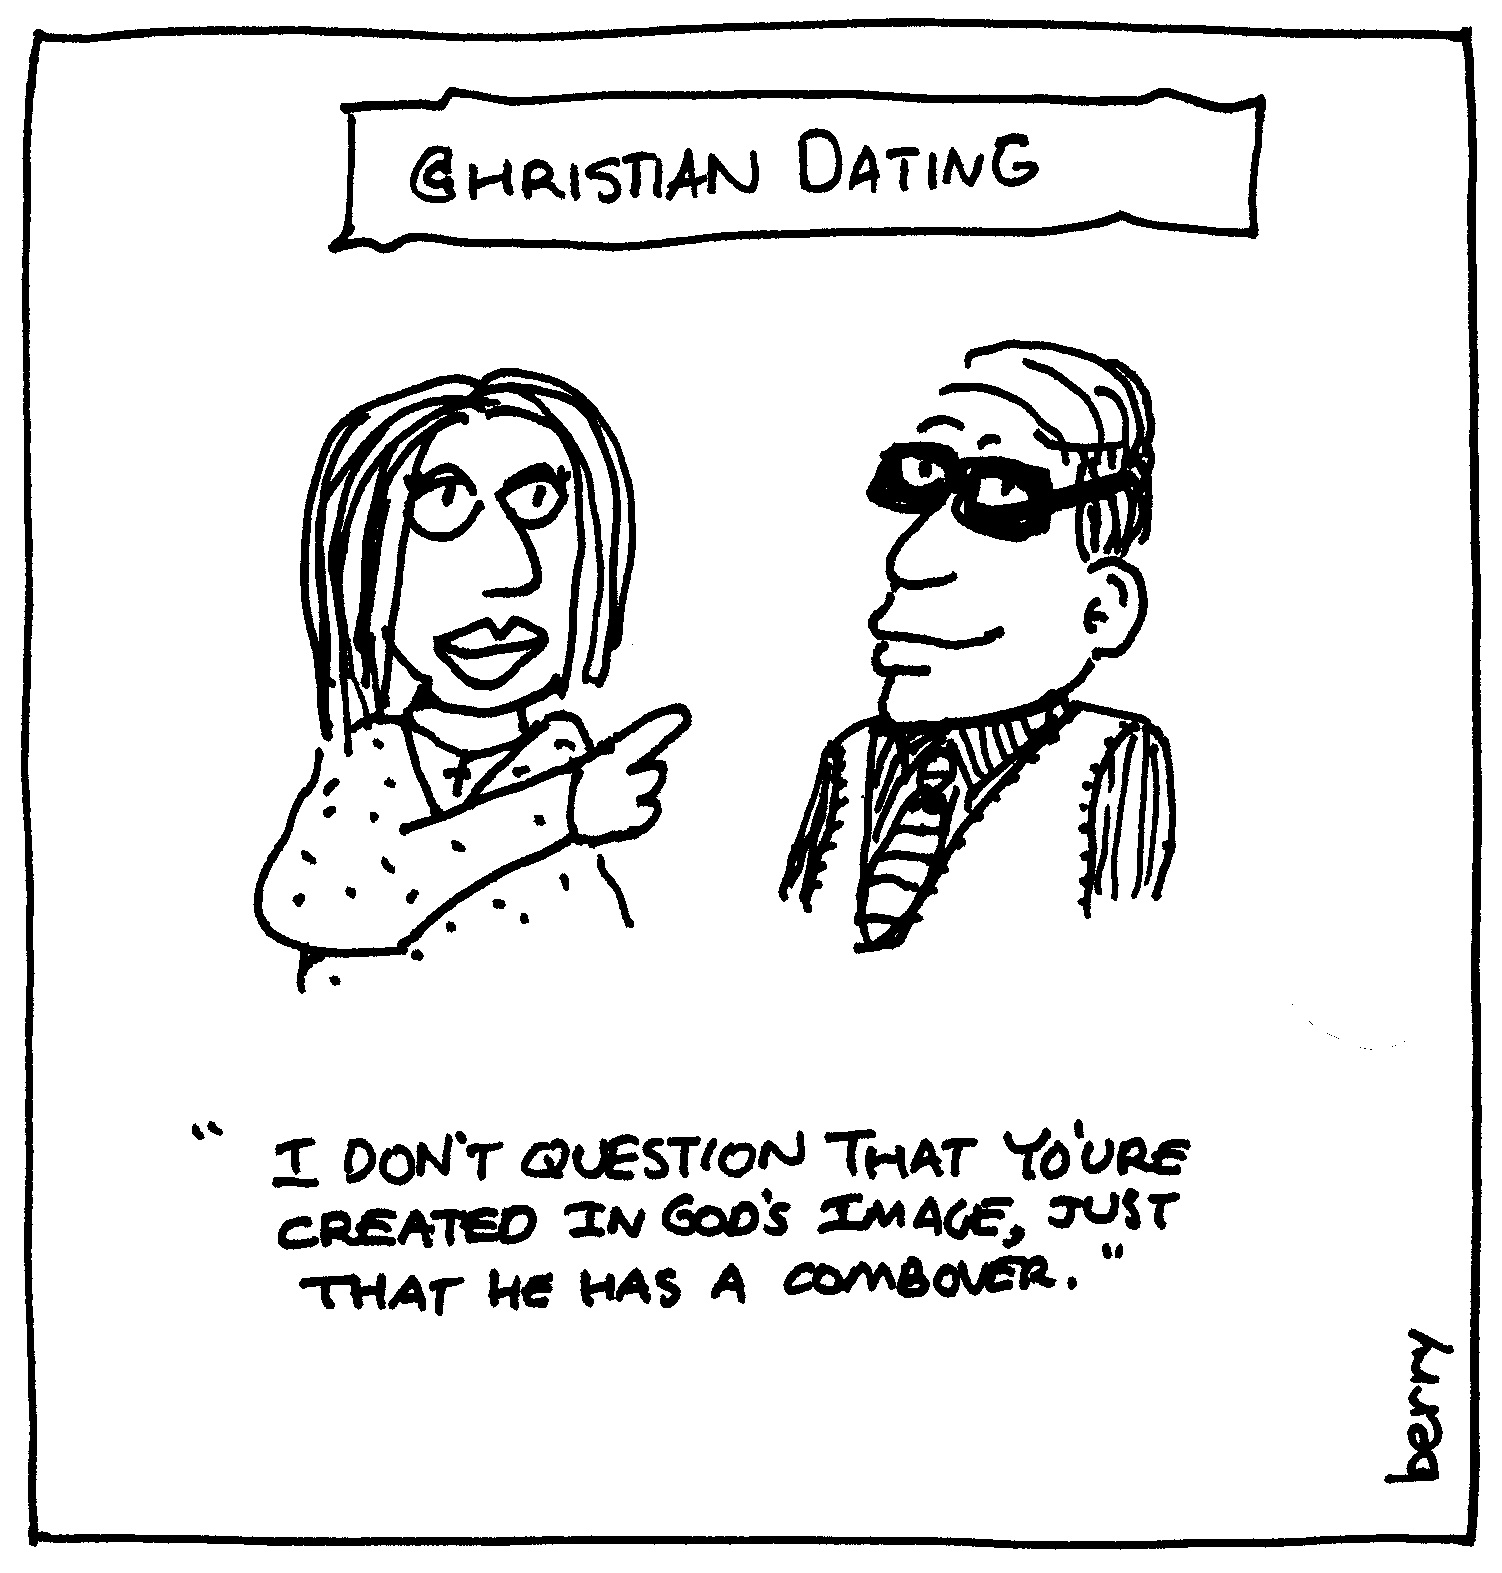 Religious online dating